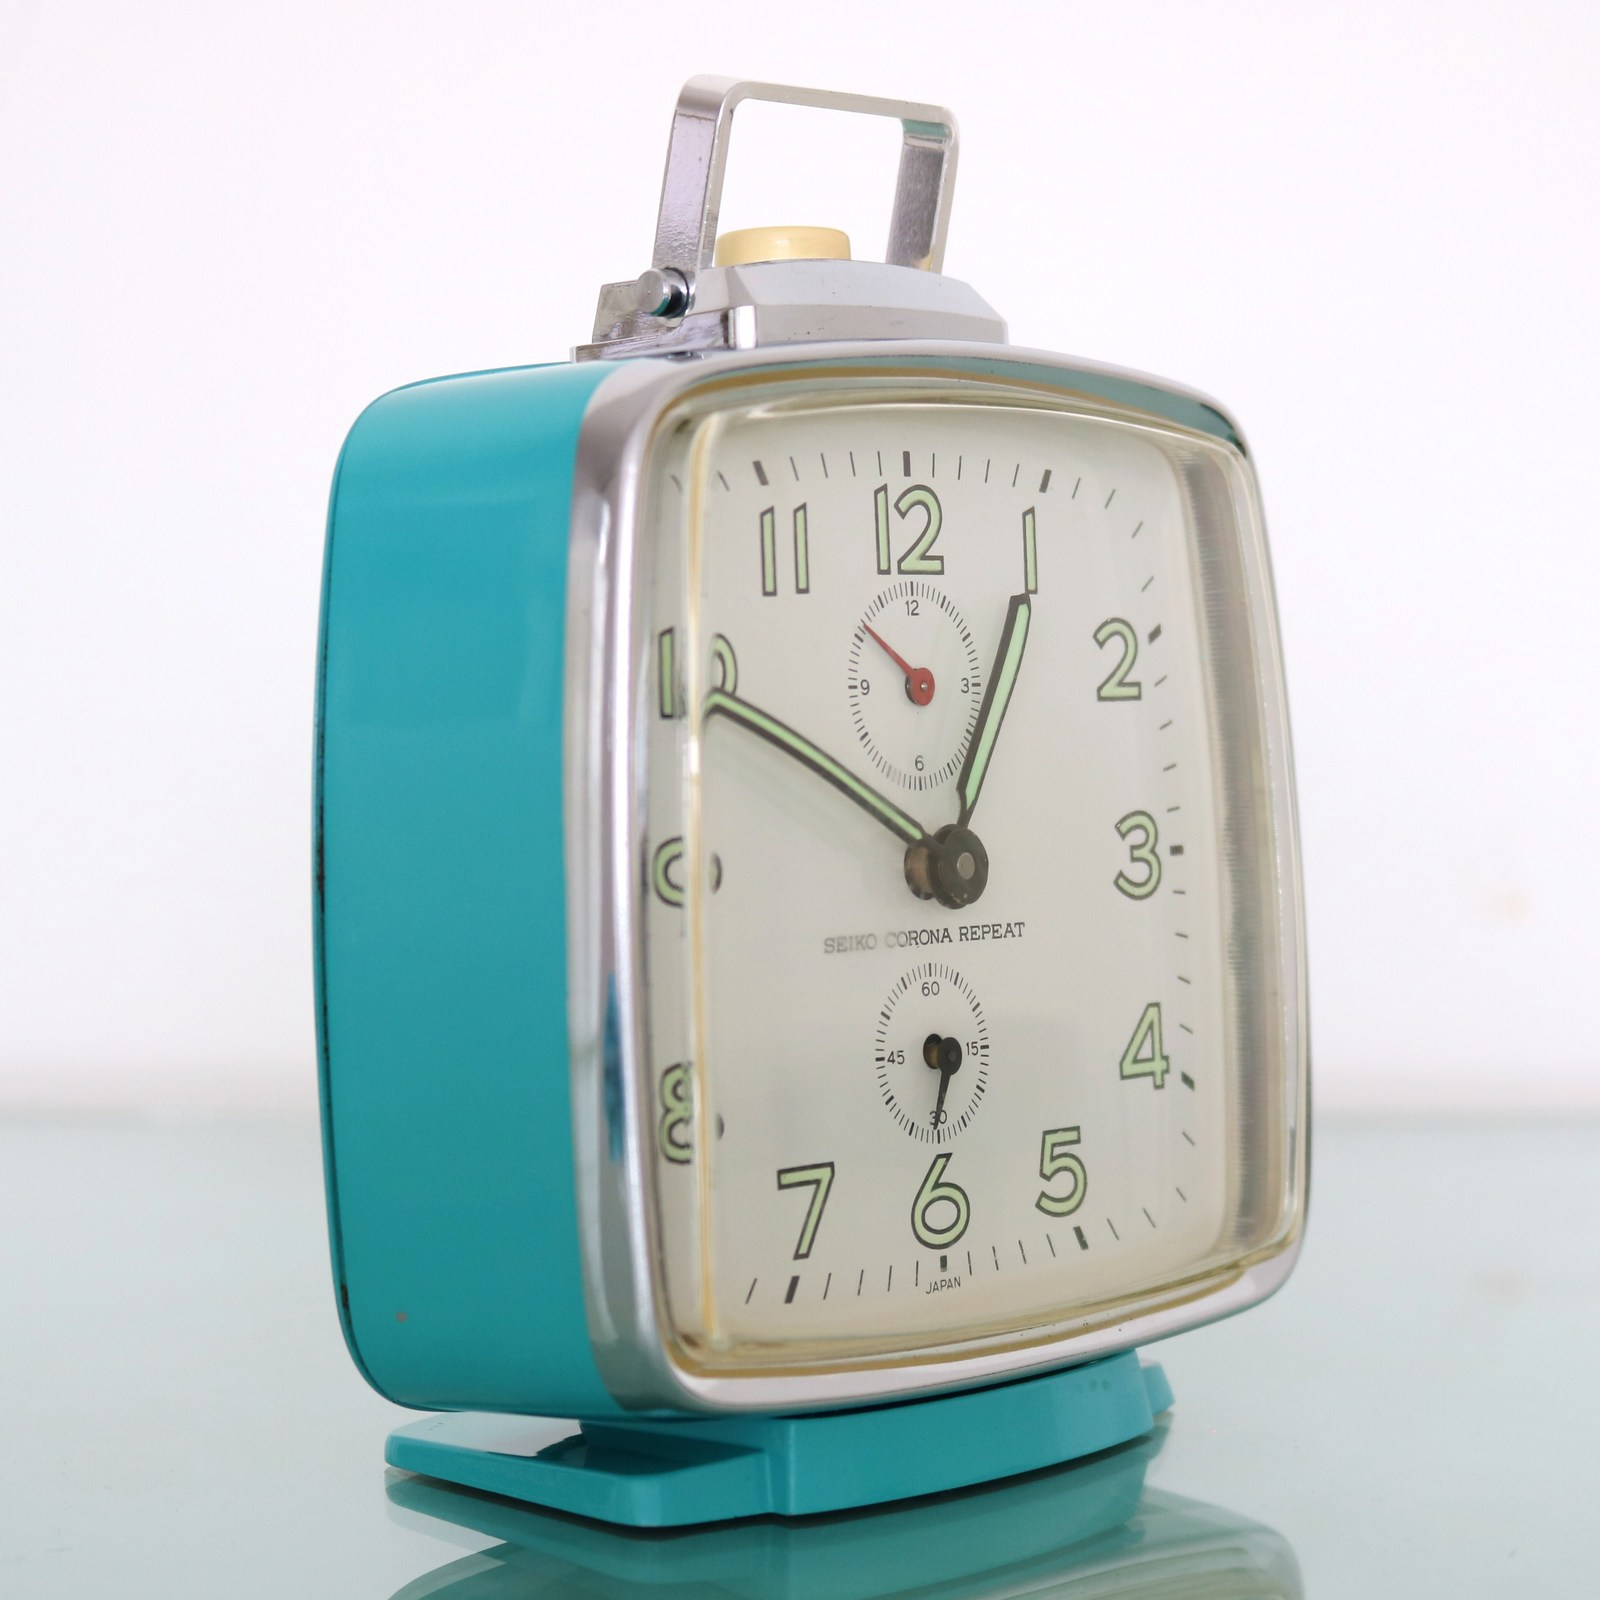 Primary image for SEIKO CORONA REPEAT Alarm Vintage Clock SUPERB! Condition RETRO 1960's SERVICED!